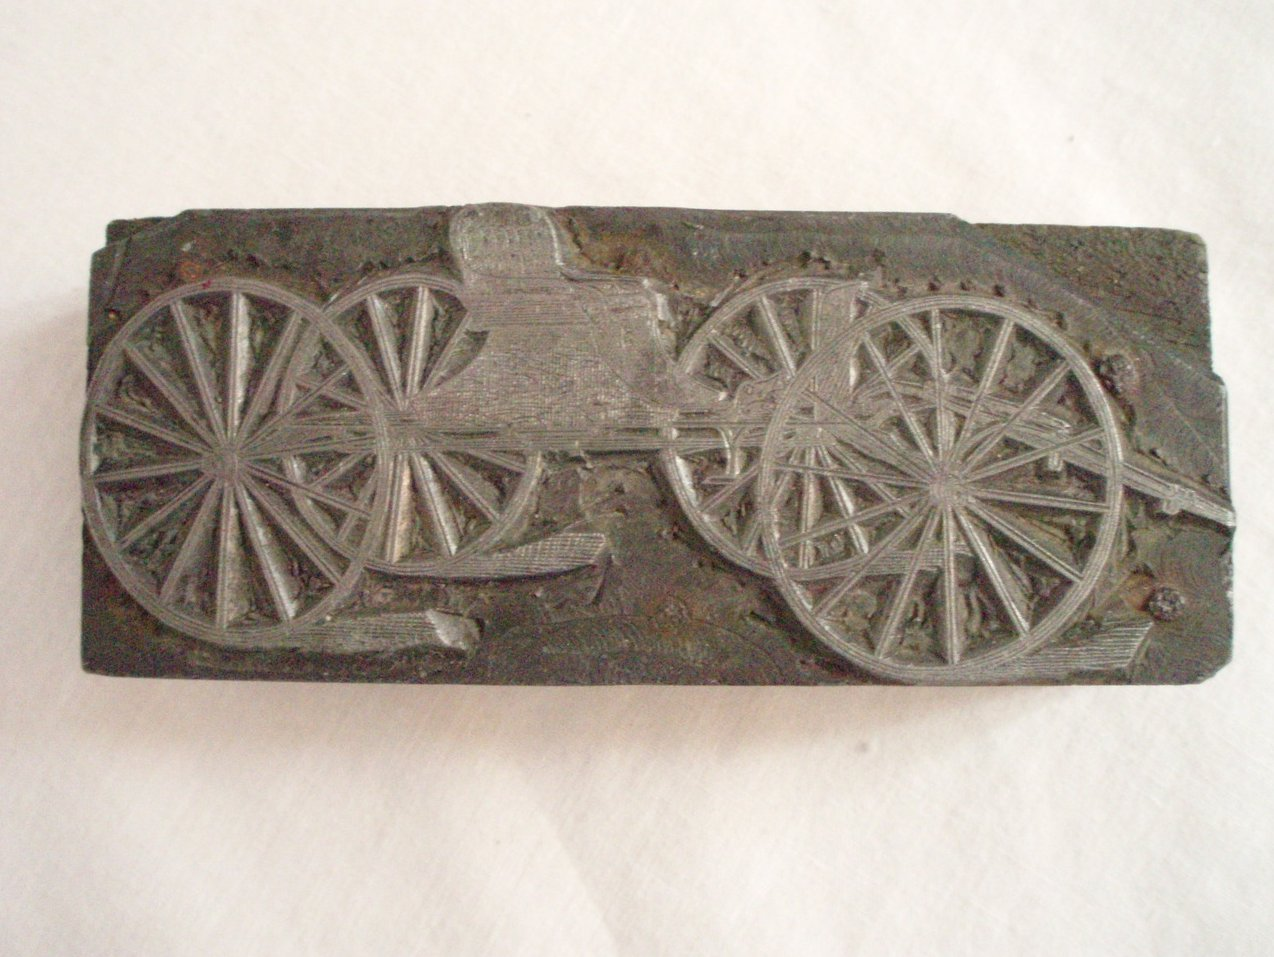 Antique Printer advertising Block Carriage Surrey